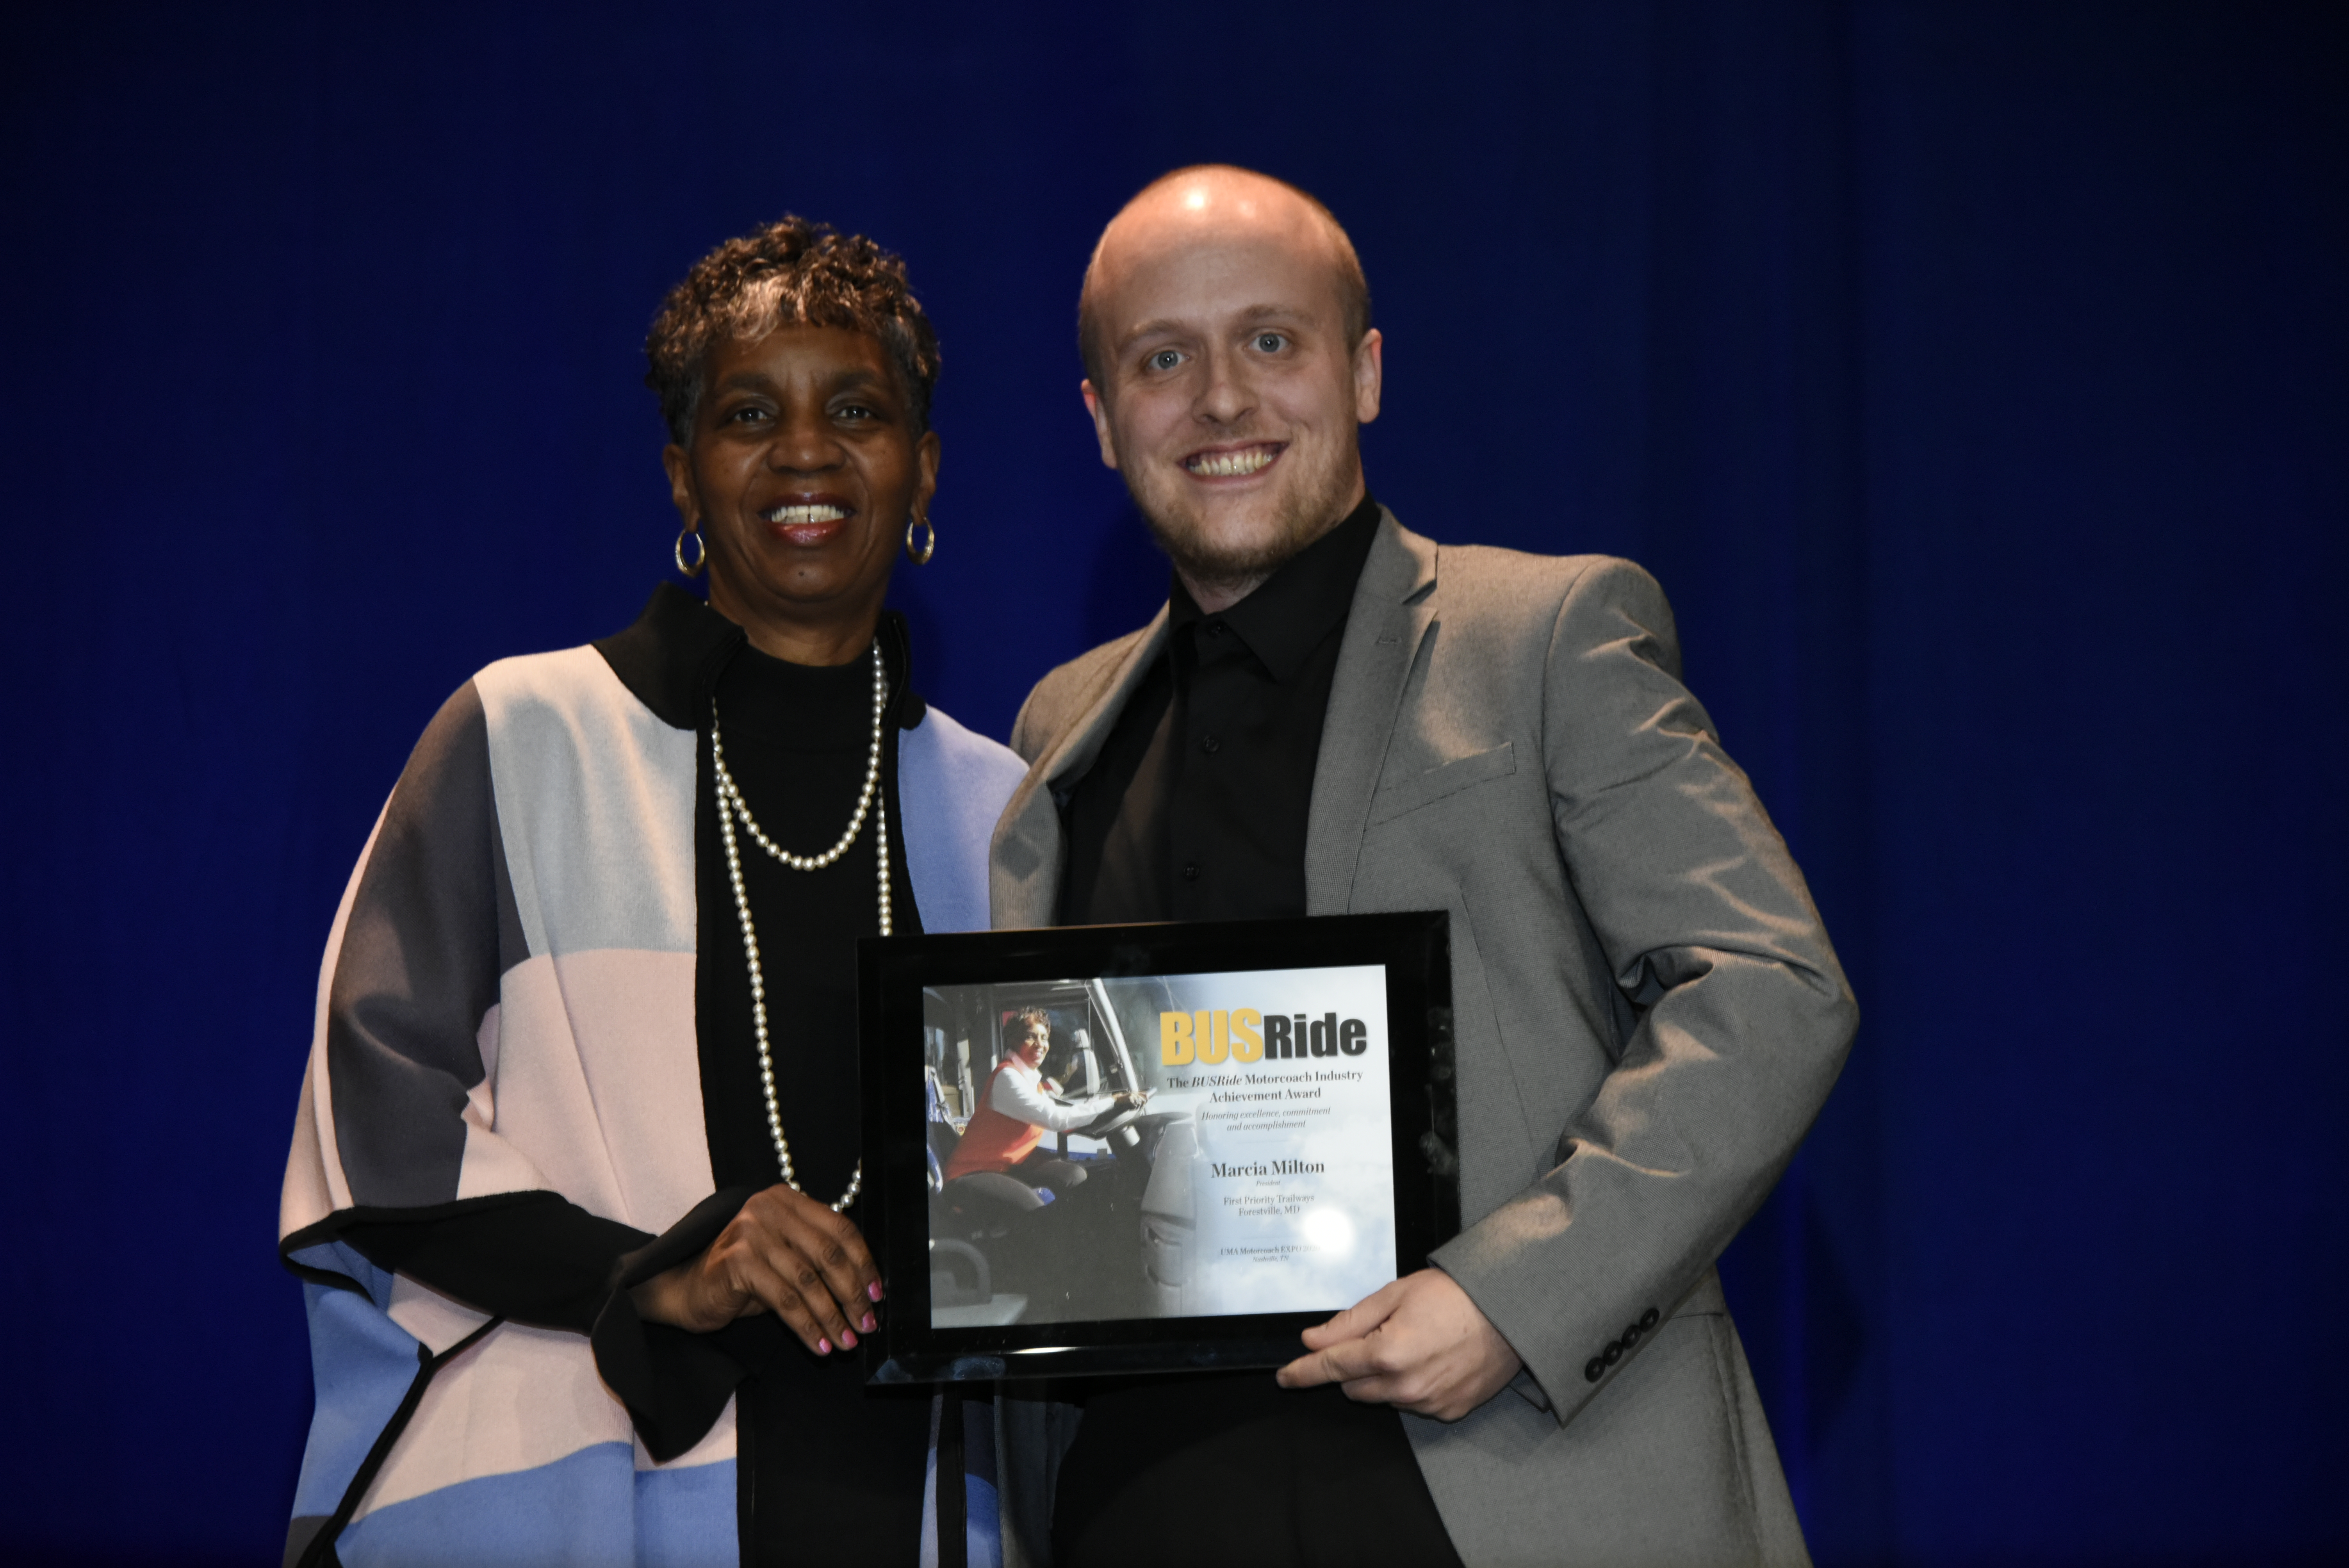 BUSRide honors Marcia Milton for career achievements at Motorcoach EXPO